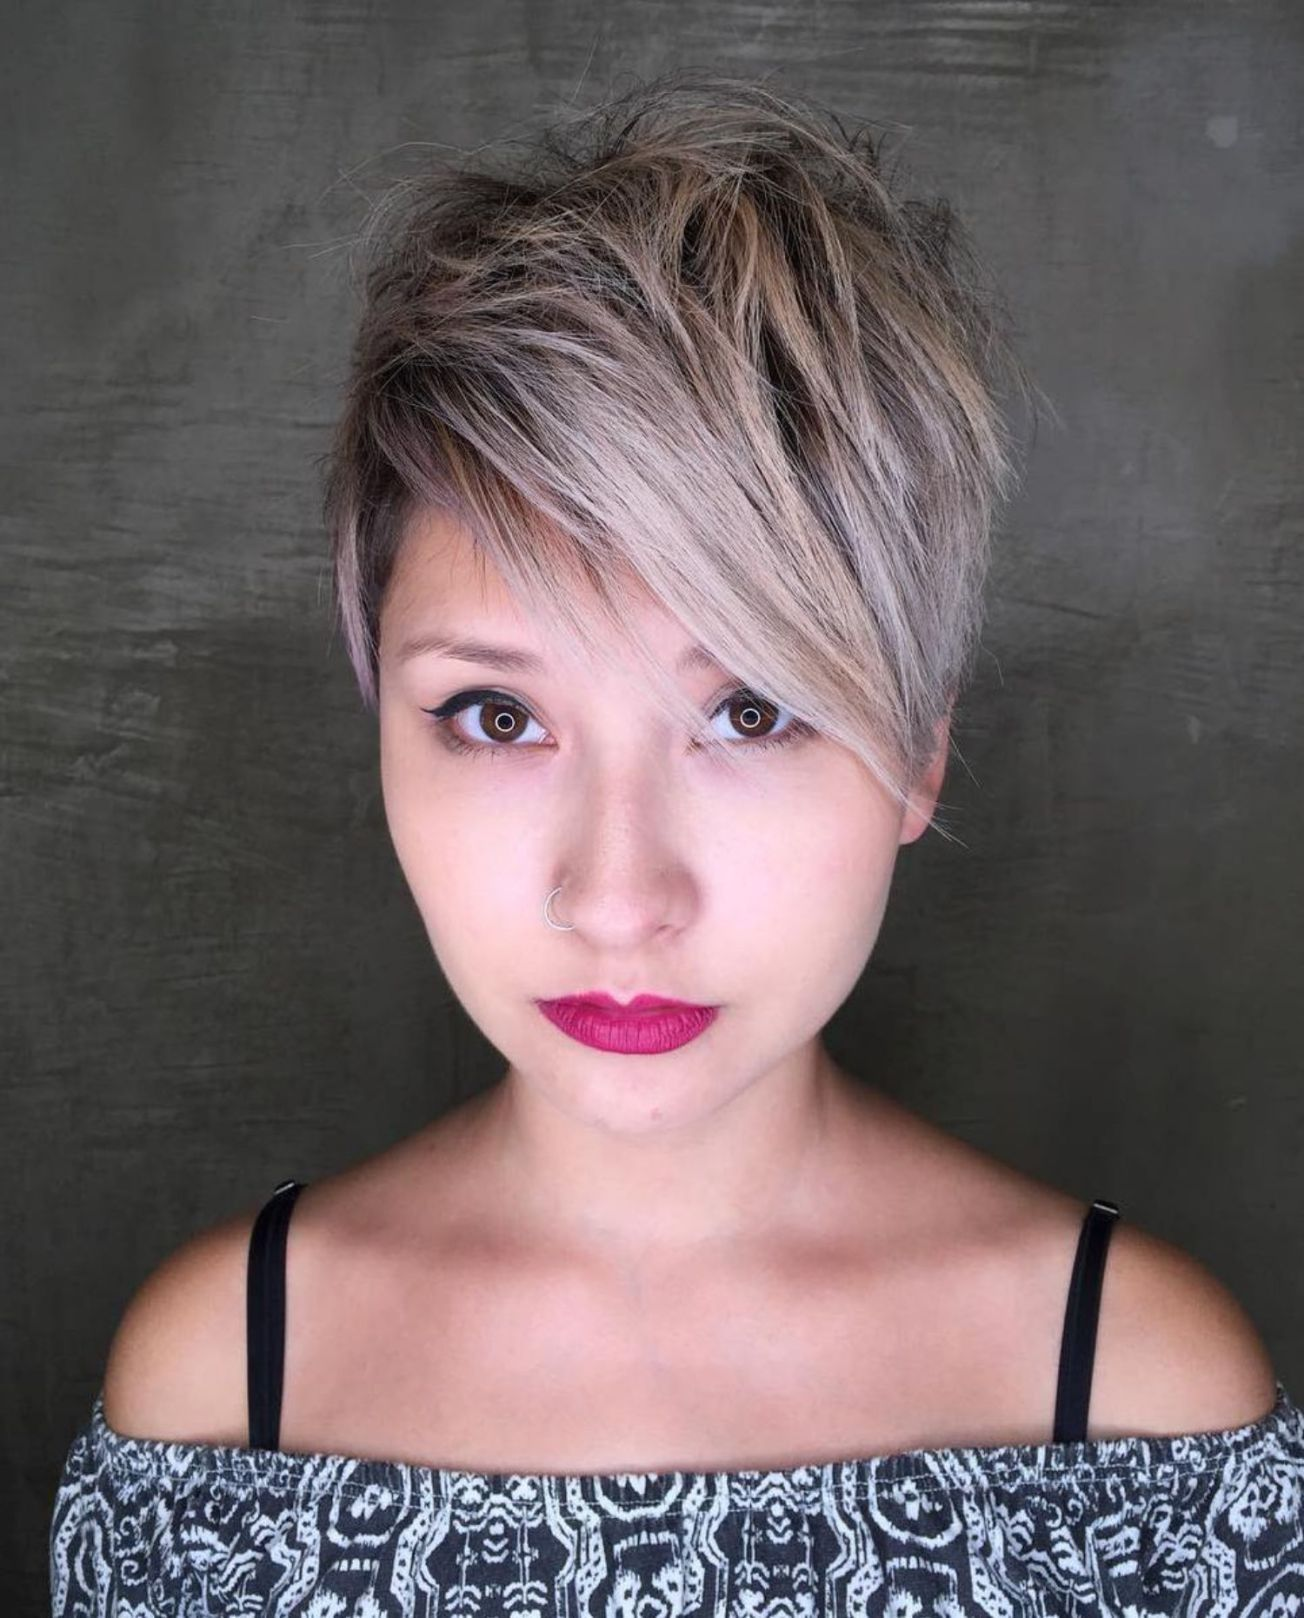 50 Super Cute Looks with Short Hairstyles for Round Faces (With images) | Short hair styles for ...